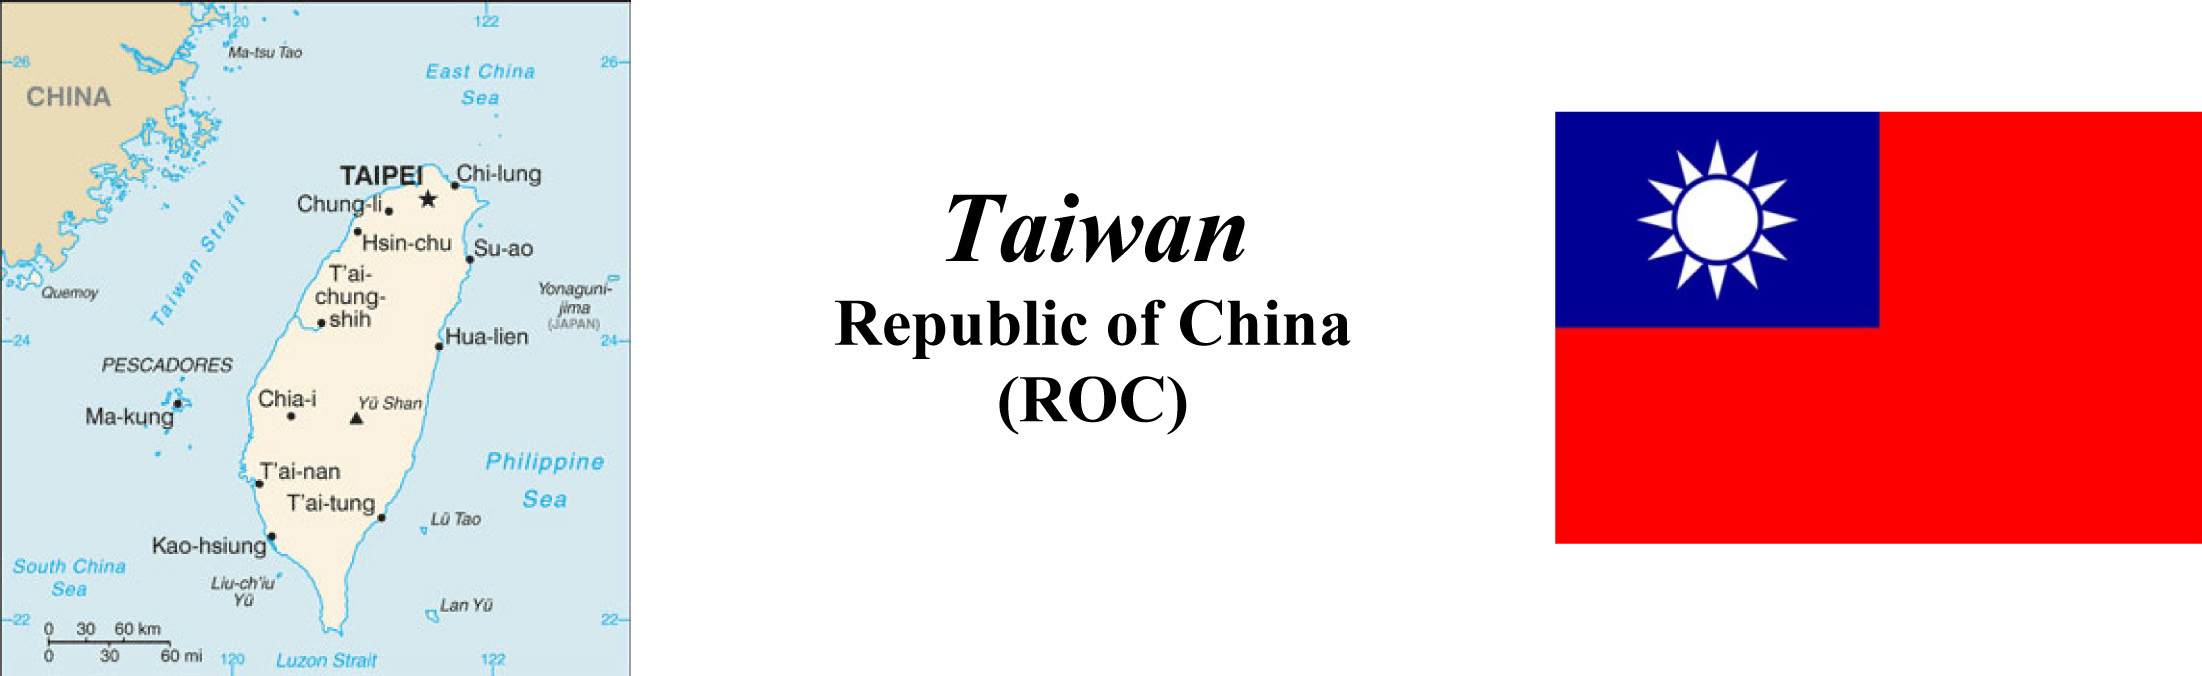 Taiwan Map and Flag